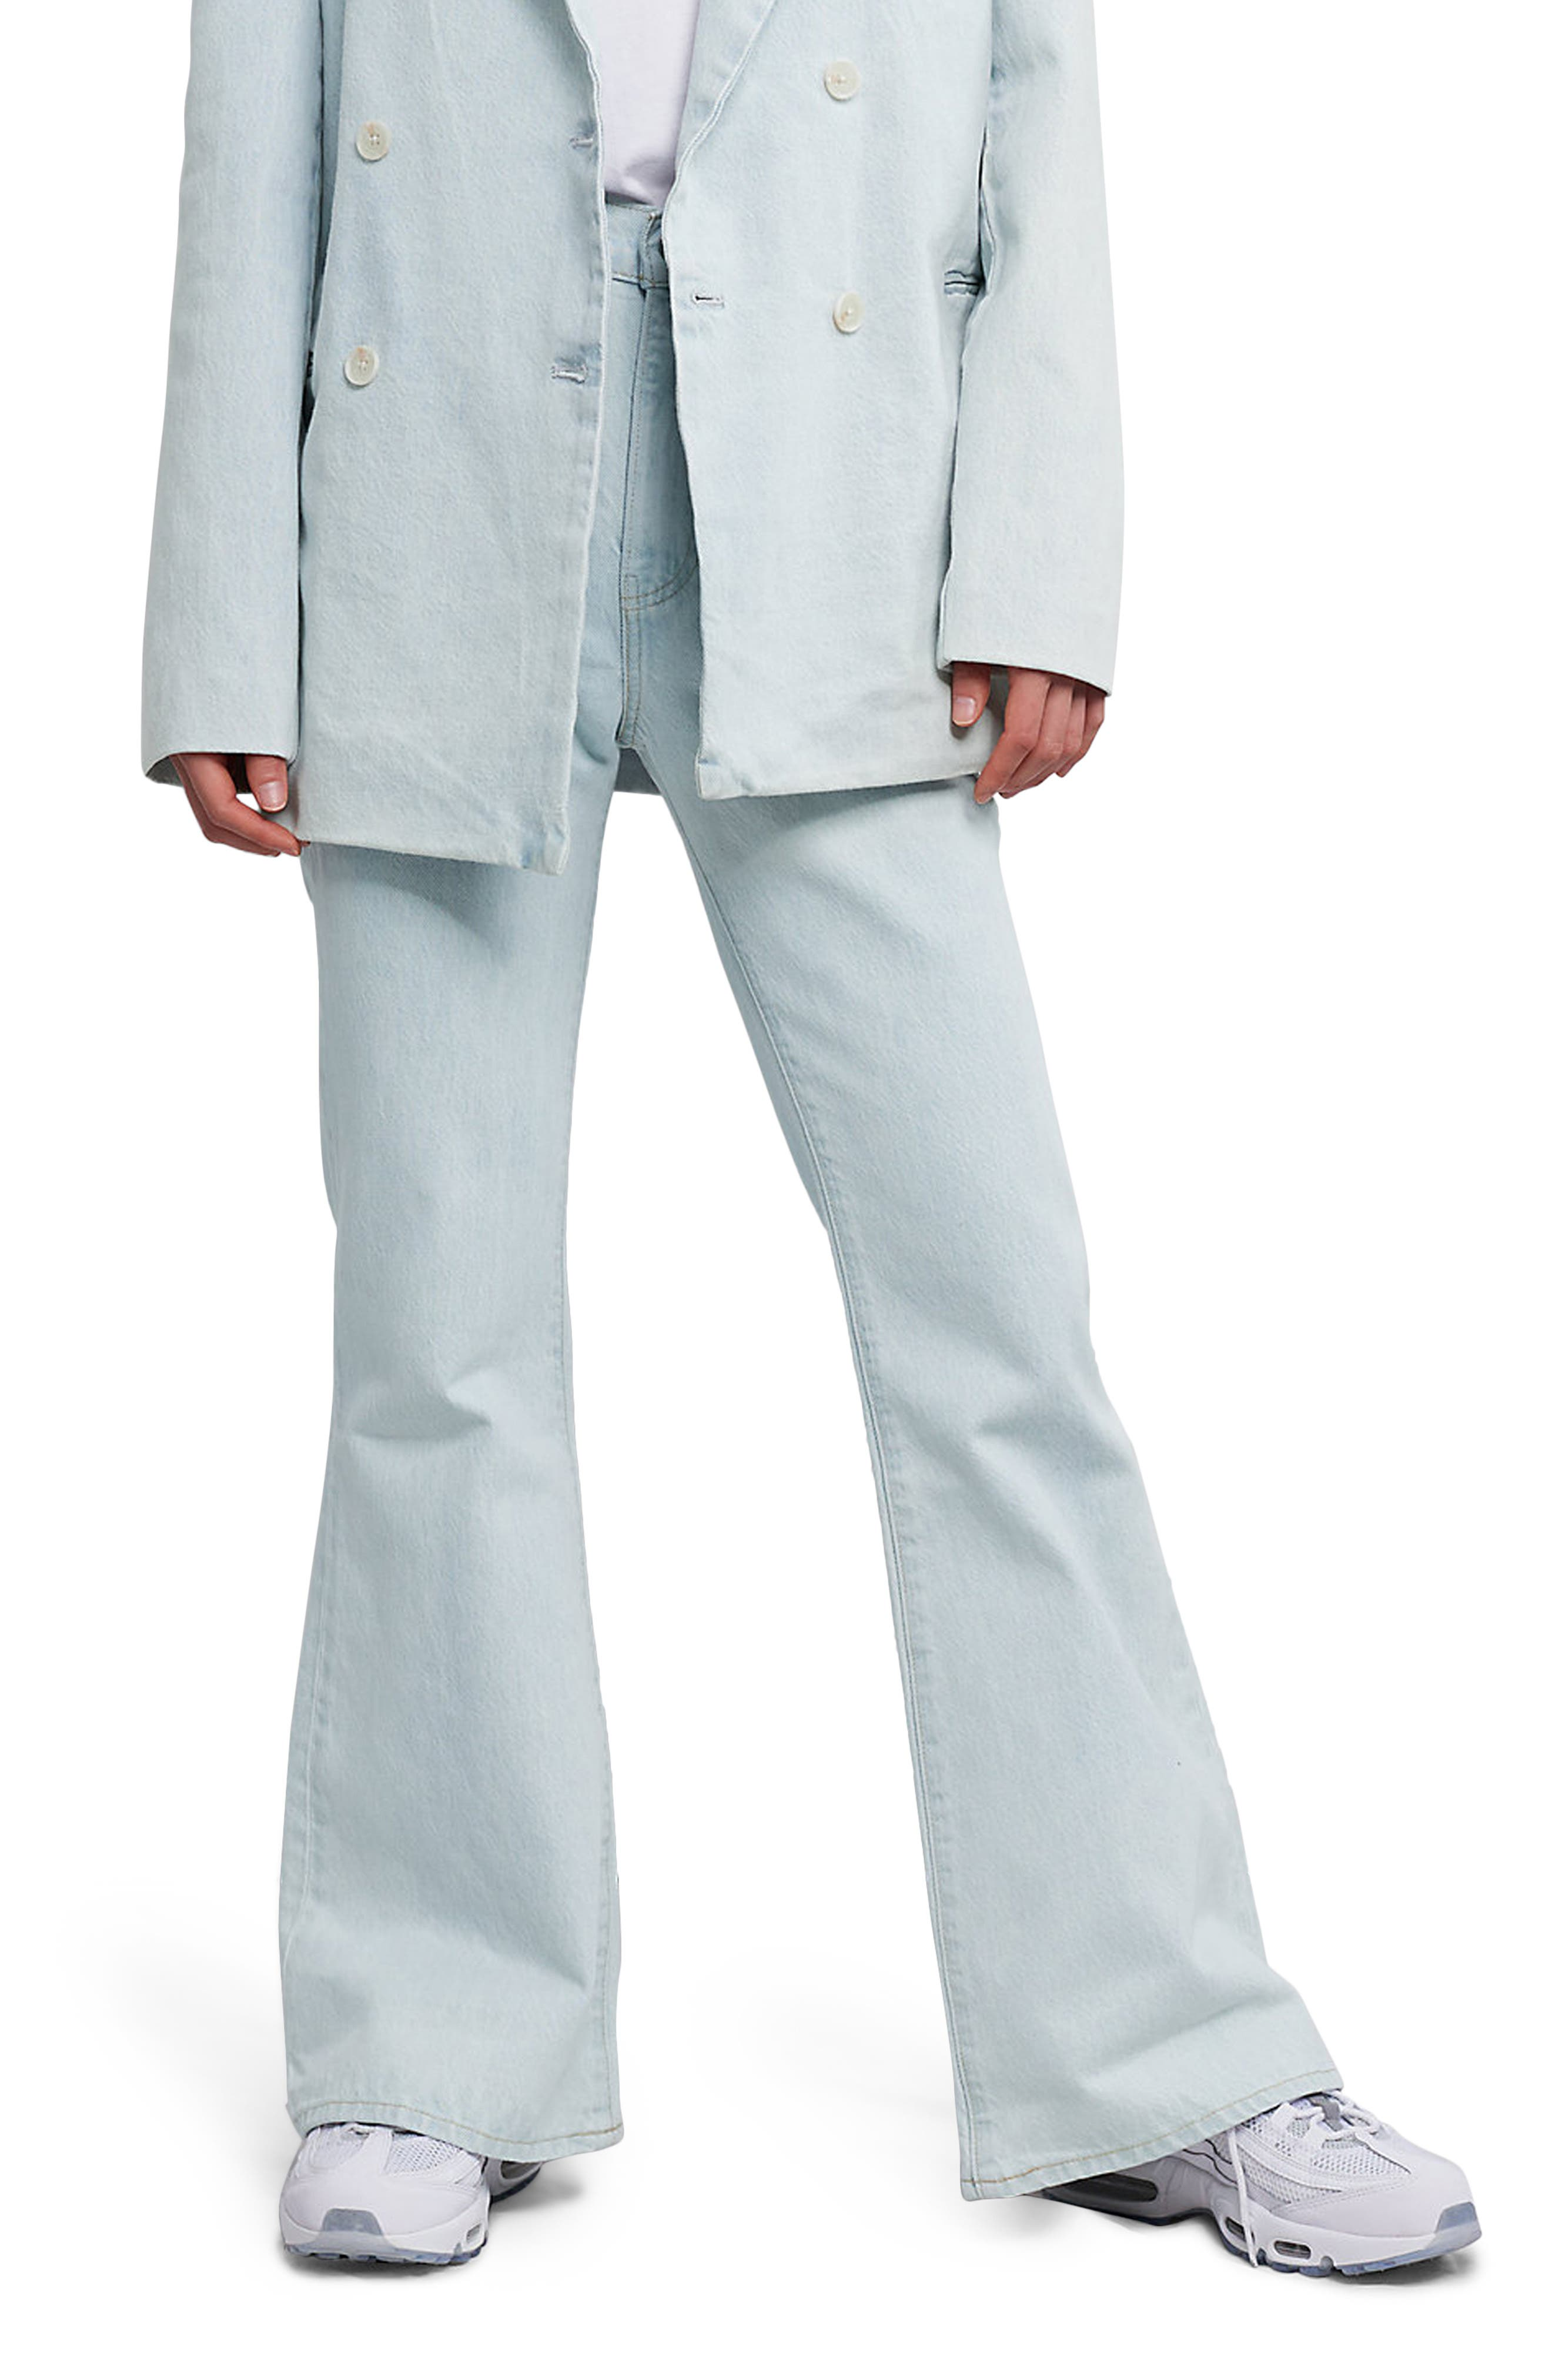 Image of Levi's Made & Crafted™ High Waist Organic Cotton Flare Jeans